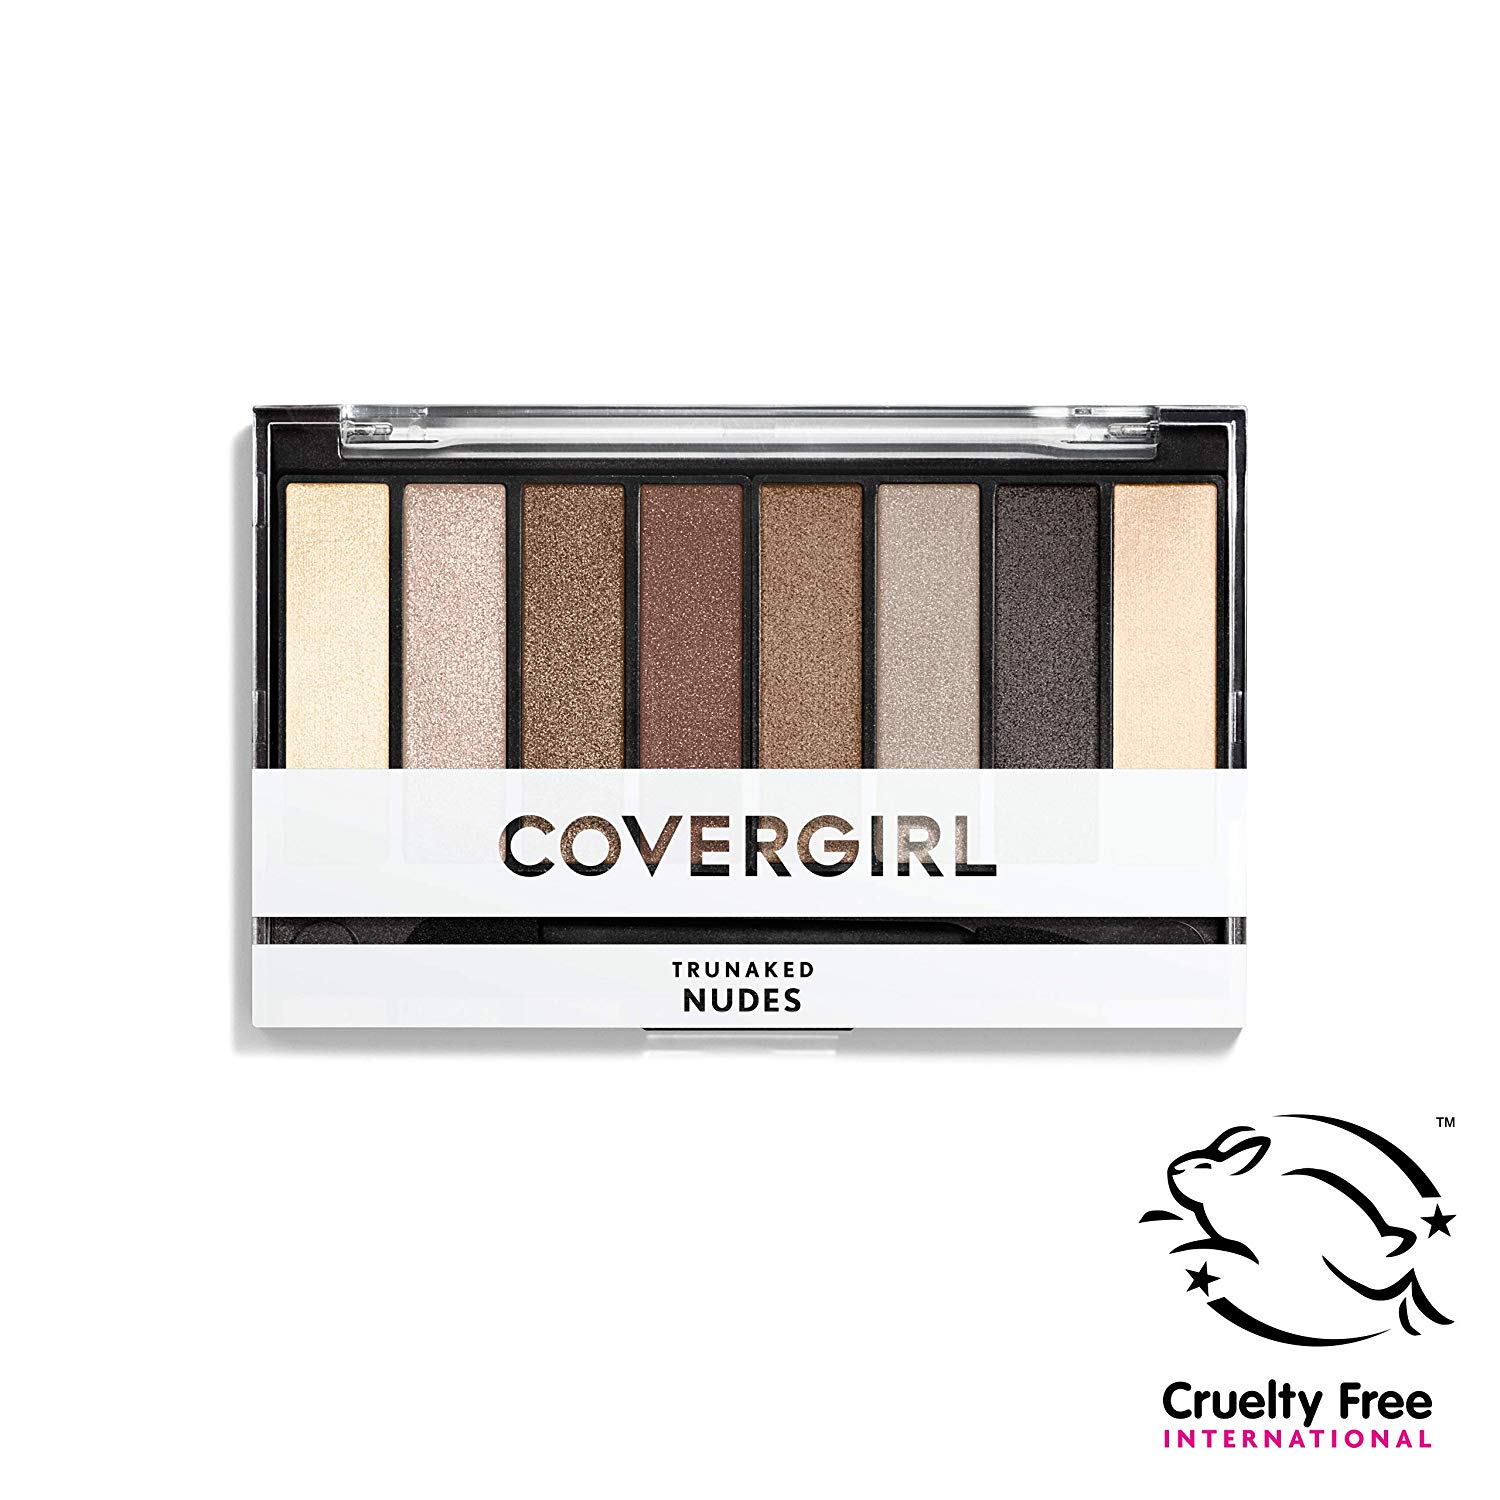 COVERGIRL truNAKED Eyeshadow Palette, Nudes 805, 0.23 ounce (Packaging May Vary) On Sale